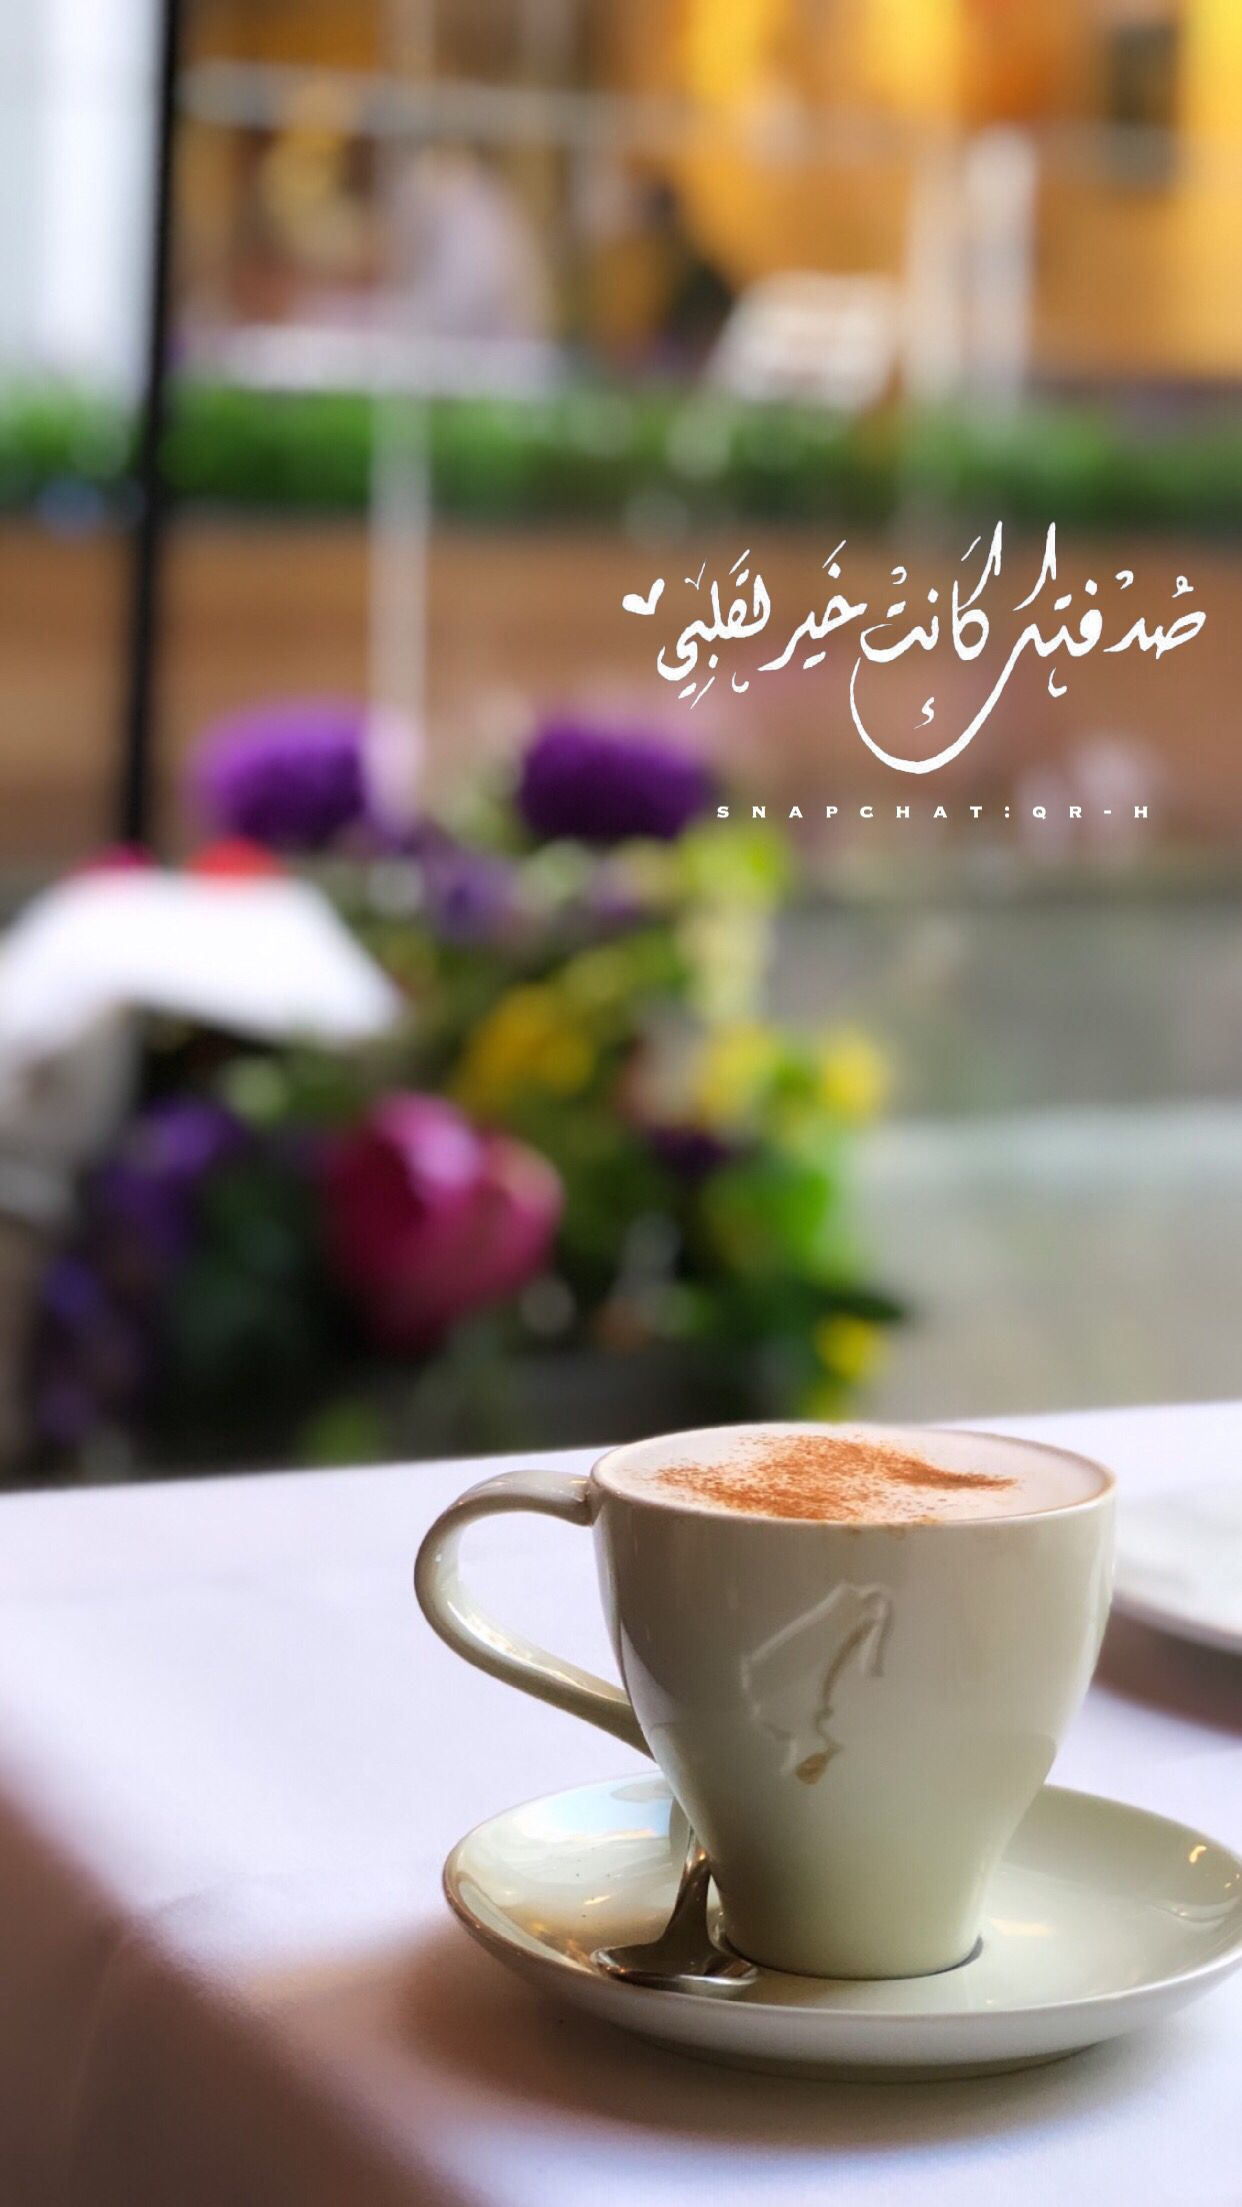 Pin By Jamal Mograbi On يومياتي Beautiful Arabic Words Coffee Lover Decor Arabic Quotes